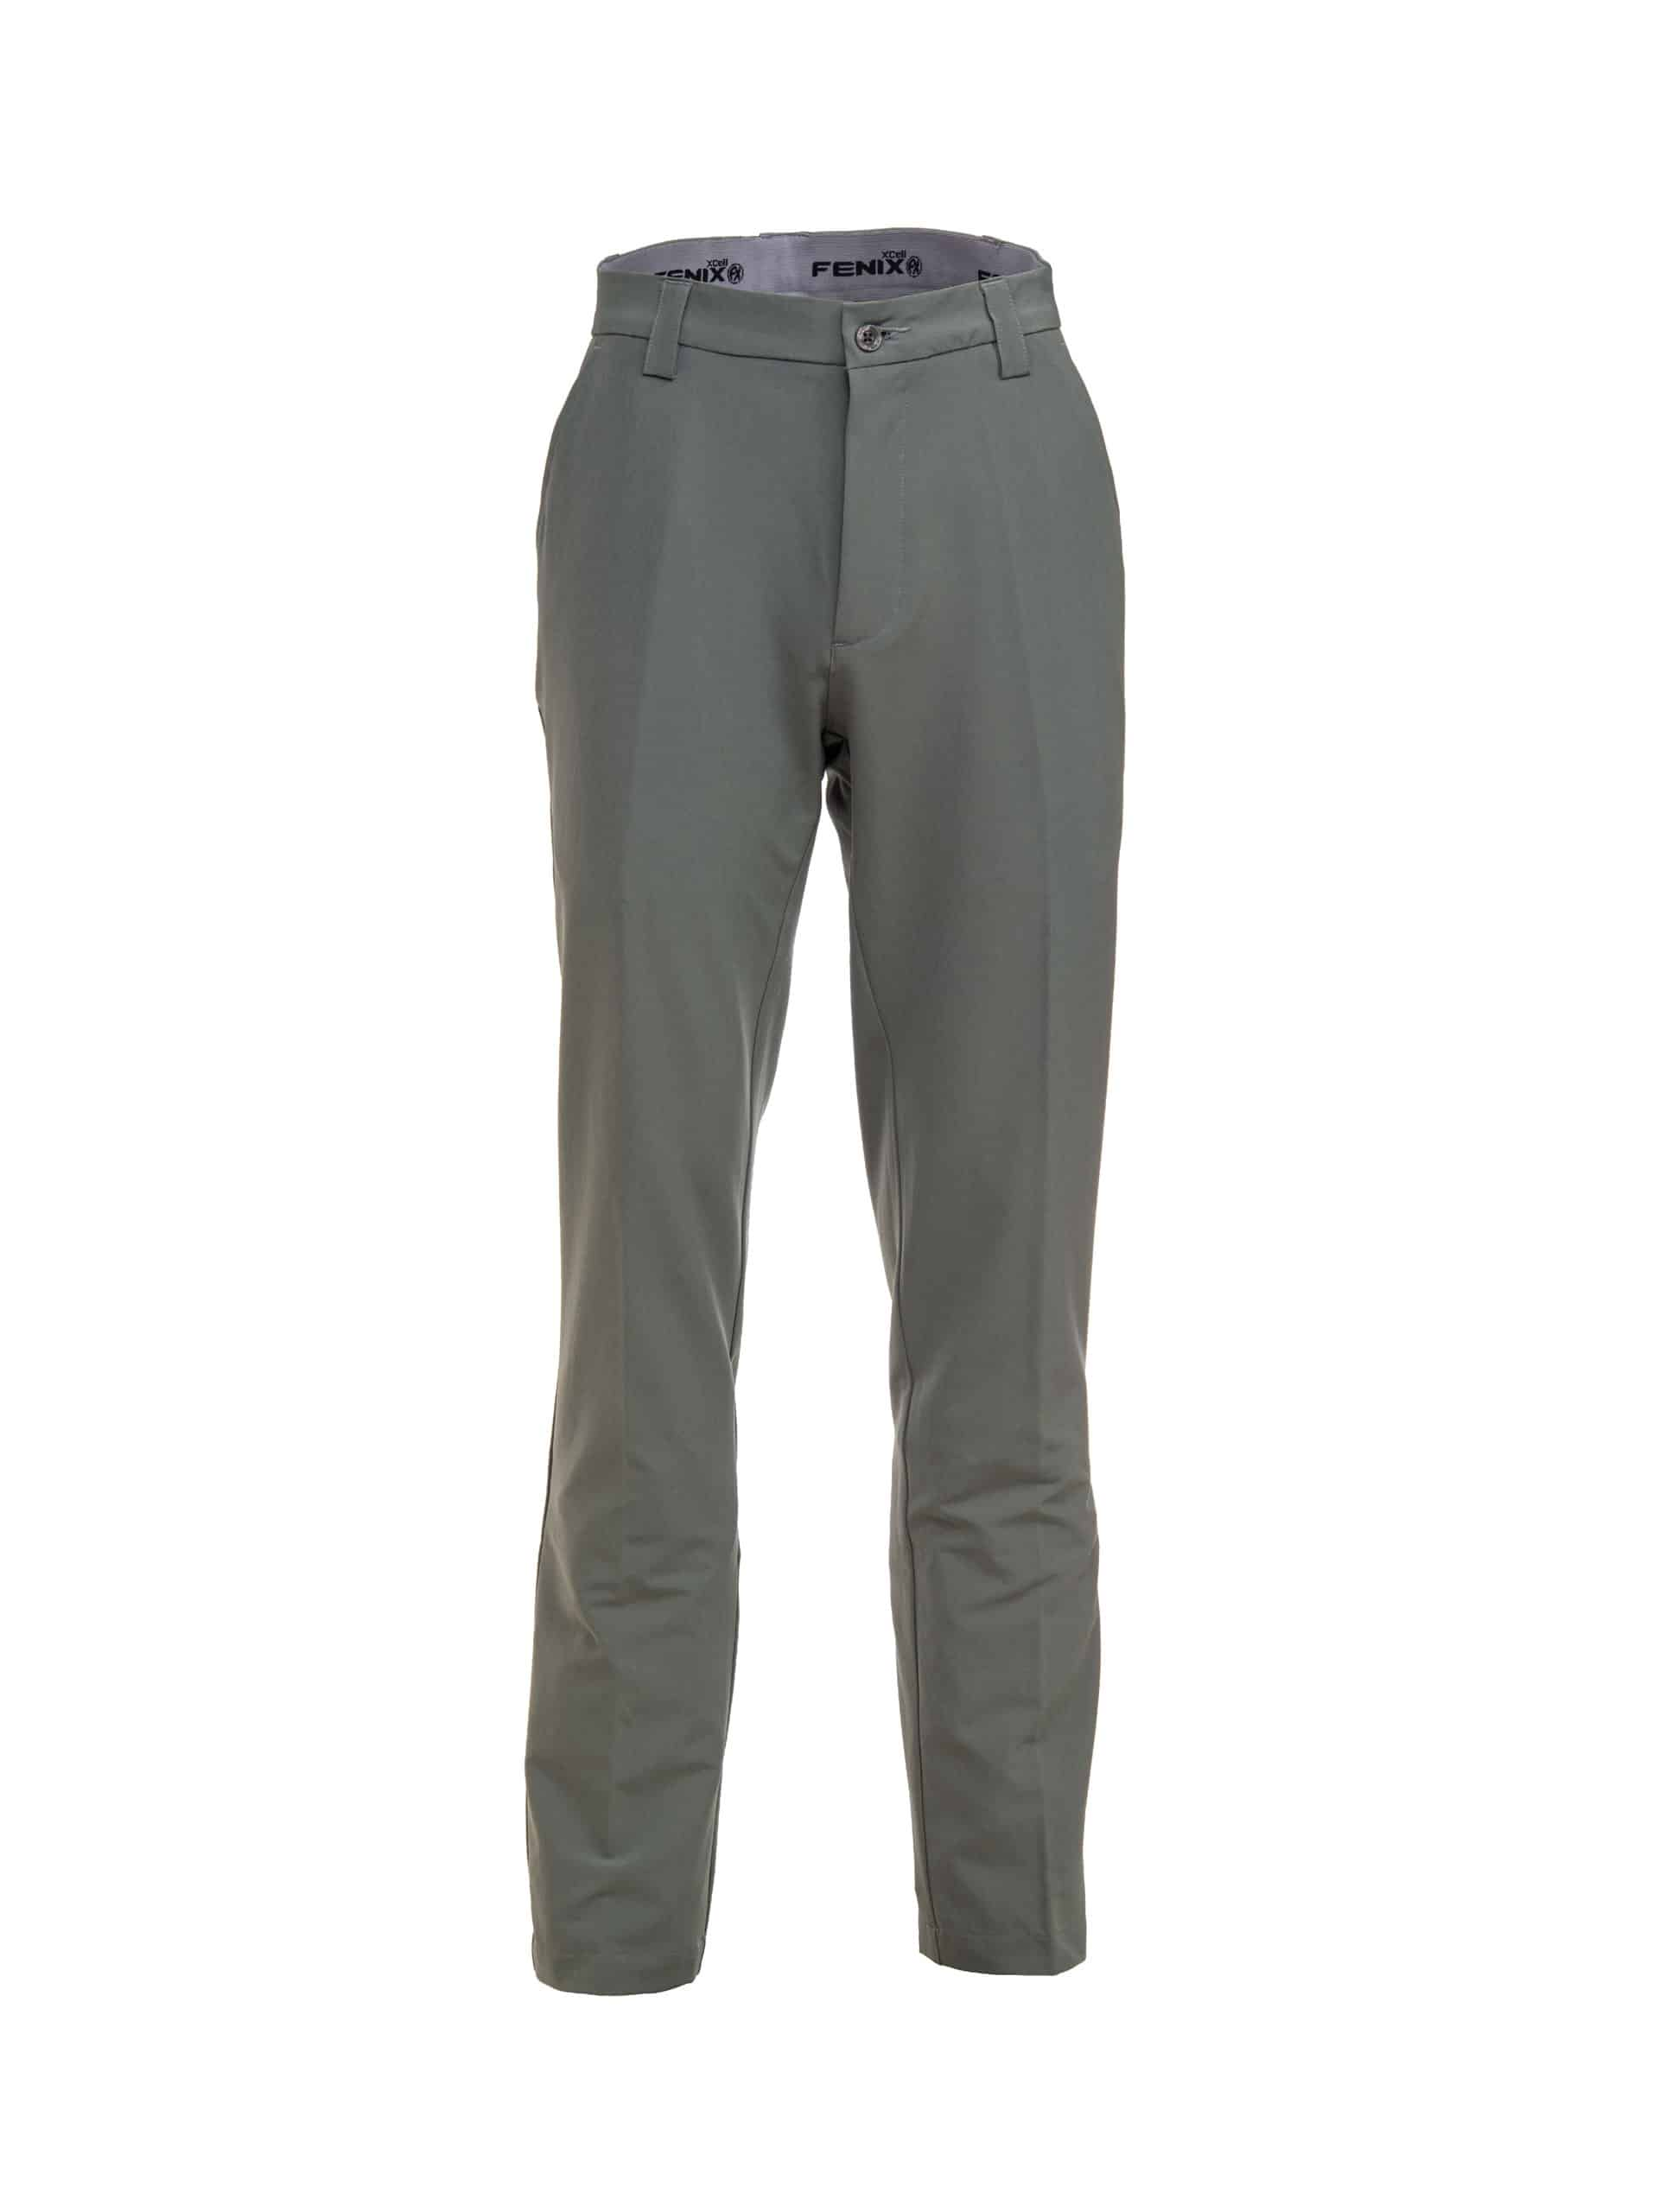 Fenix XCell Men's grey golf trousers front view